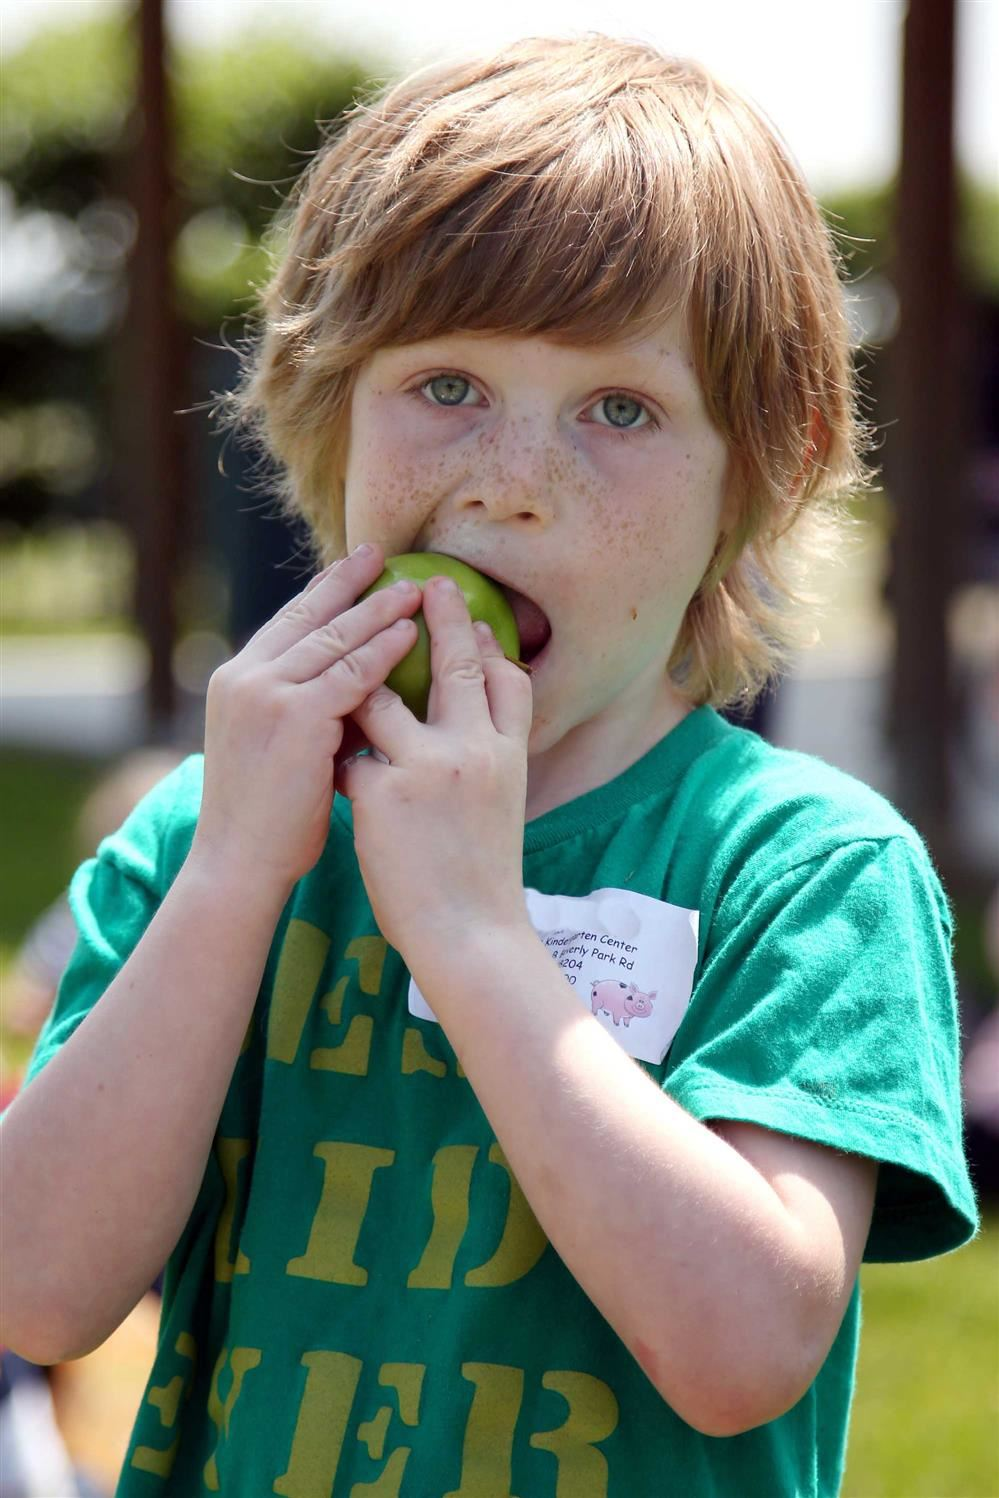 Young red-headed boy eating a green apple